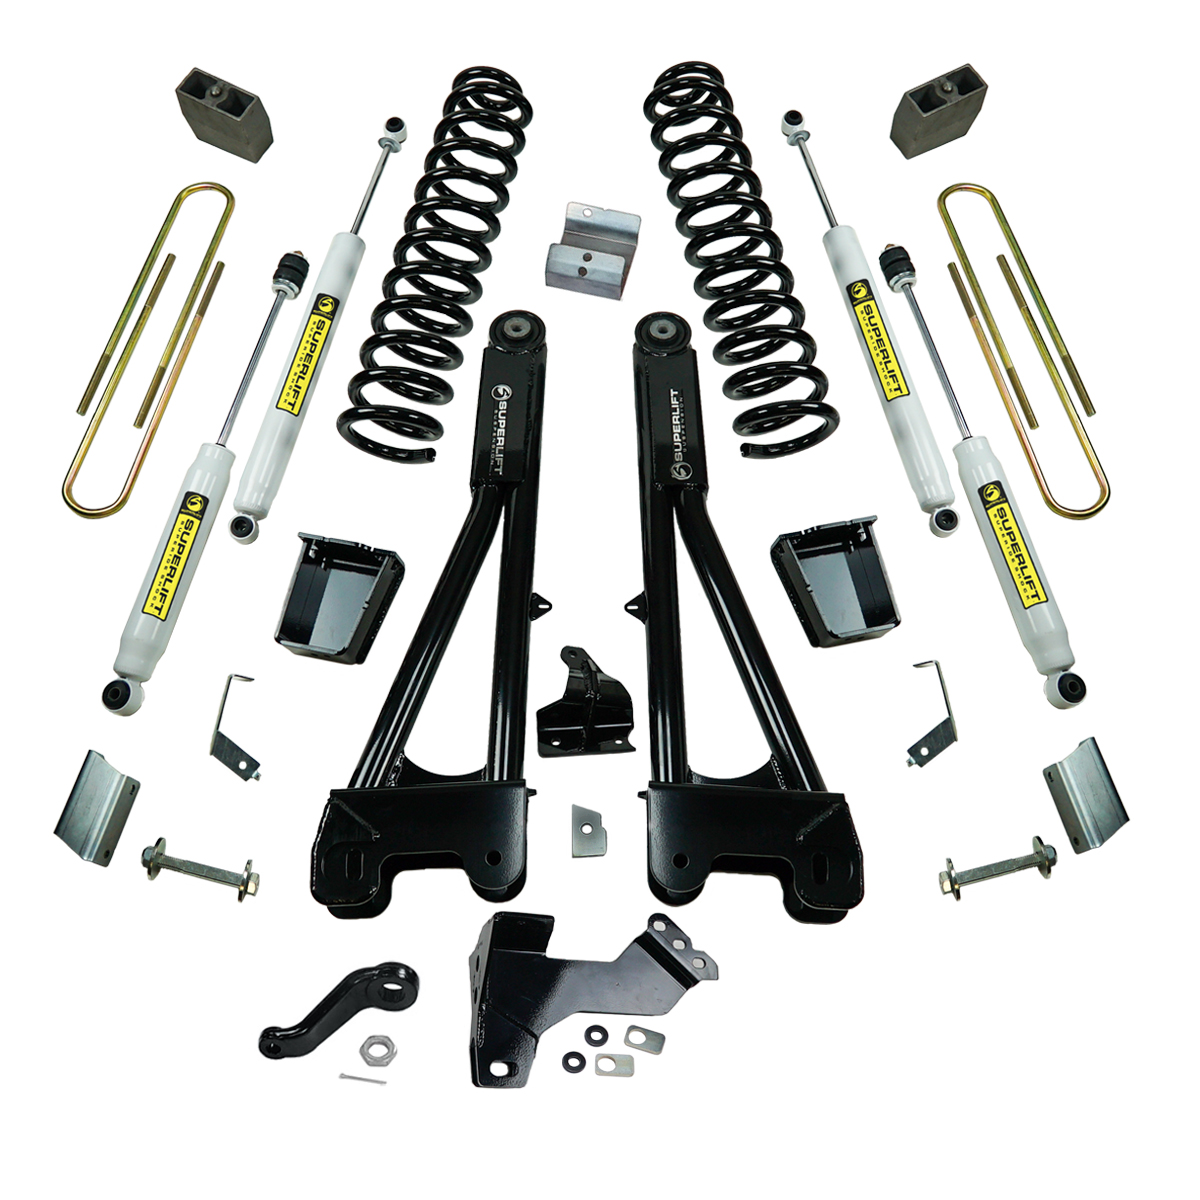 Superlift K989 6 inch Lift Kit with Replacement Radius Arms and Superlift Shocks